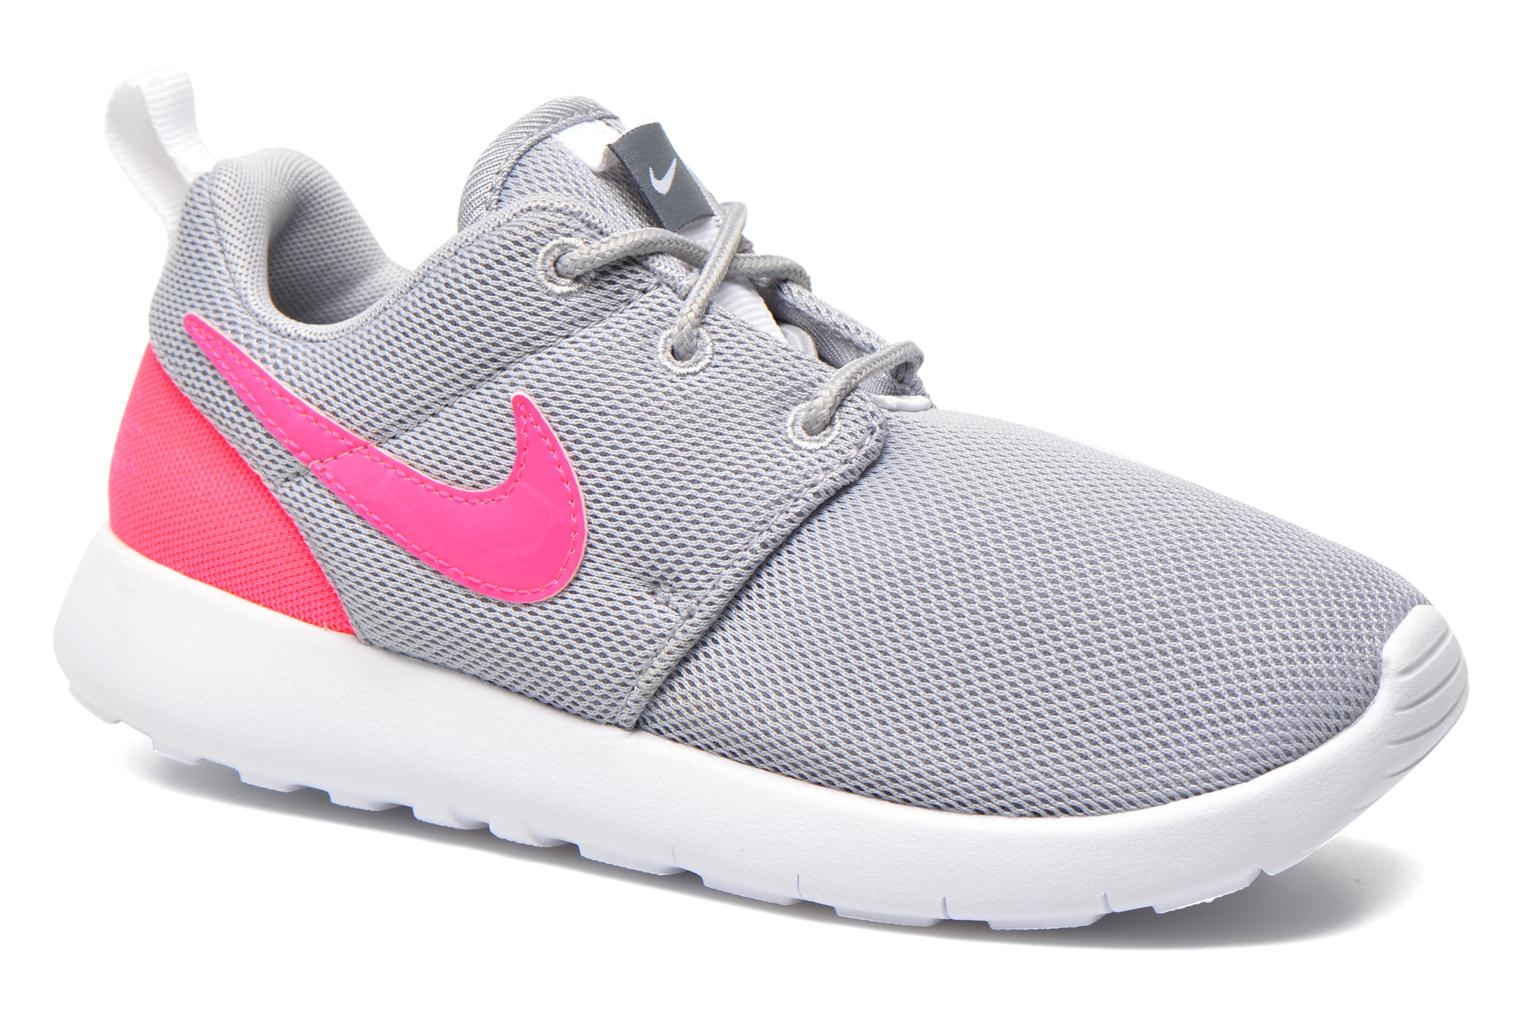 Roshe One (Ps) Wolf Grey/Hypr Pink-Cl Gry-Wht